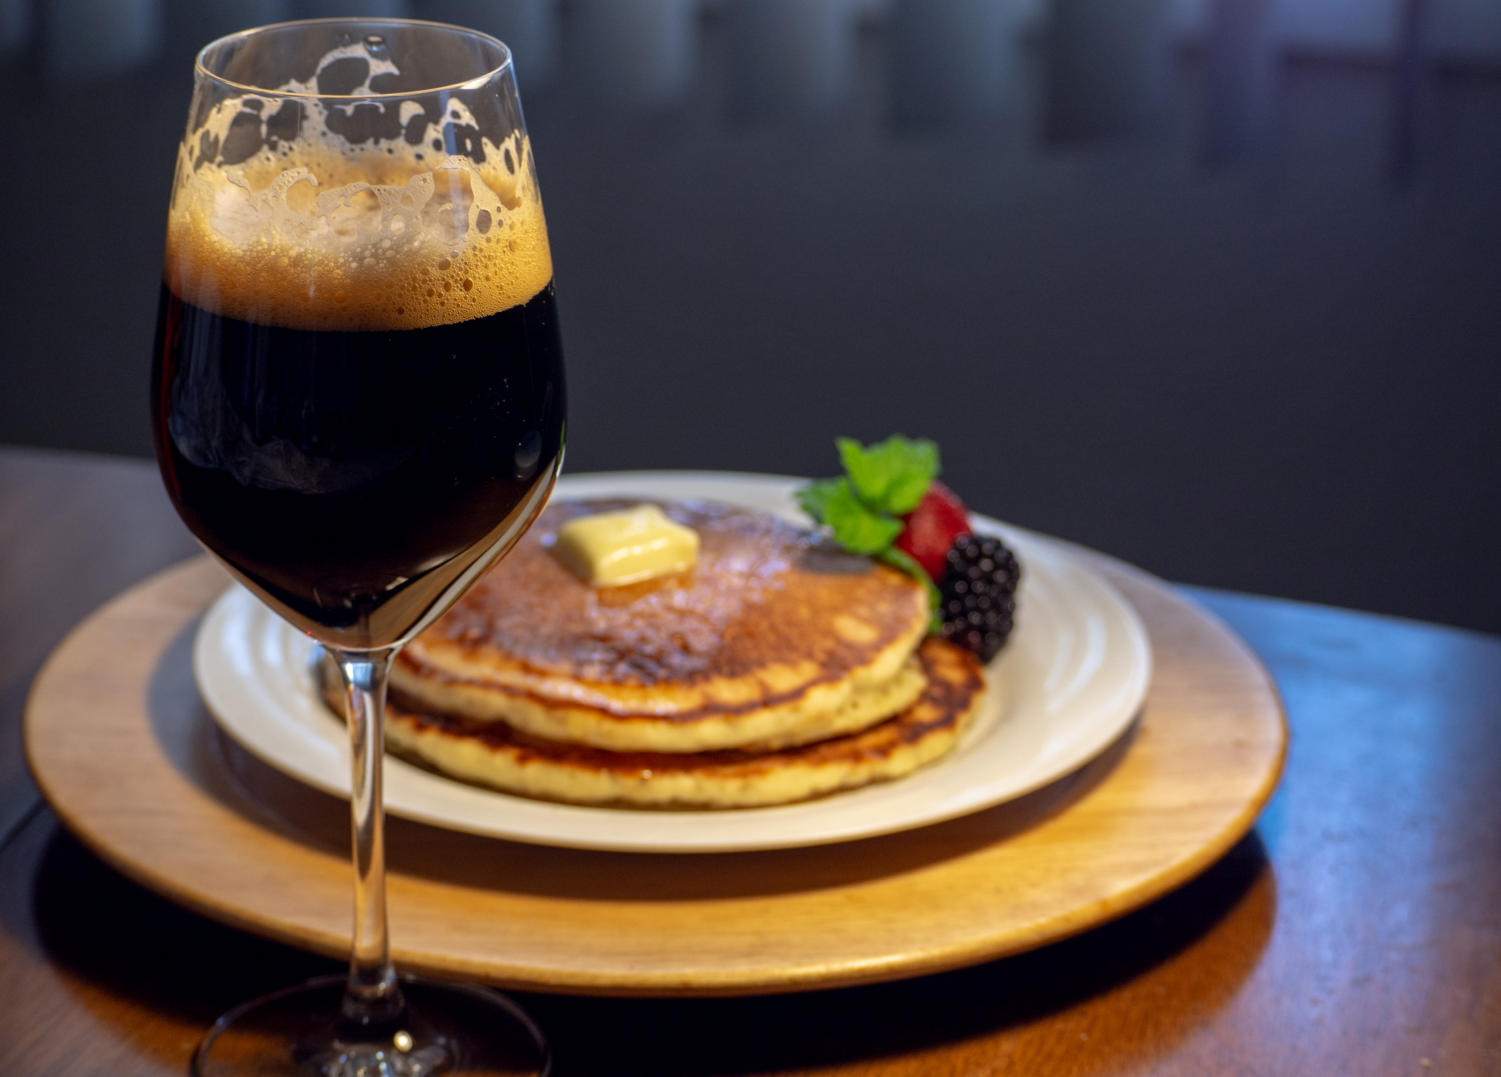 Imperial Stout Ales pair perfectly great with pancakes.